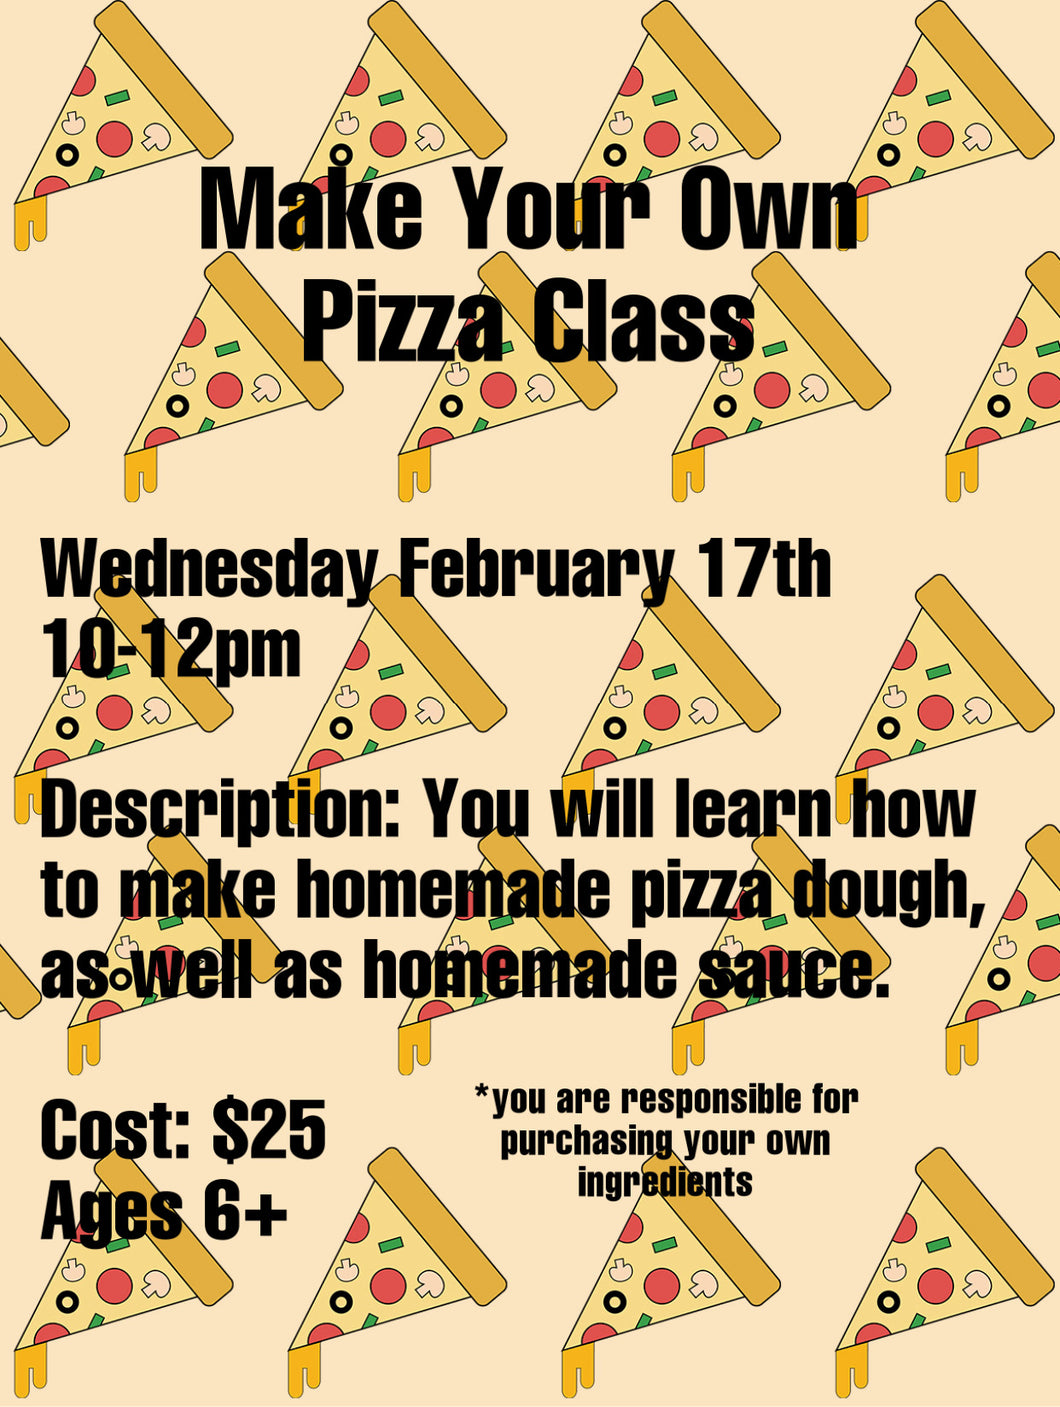 Make Your Own Pizza Class 2/17 10am-12pm